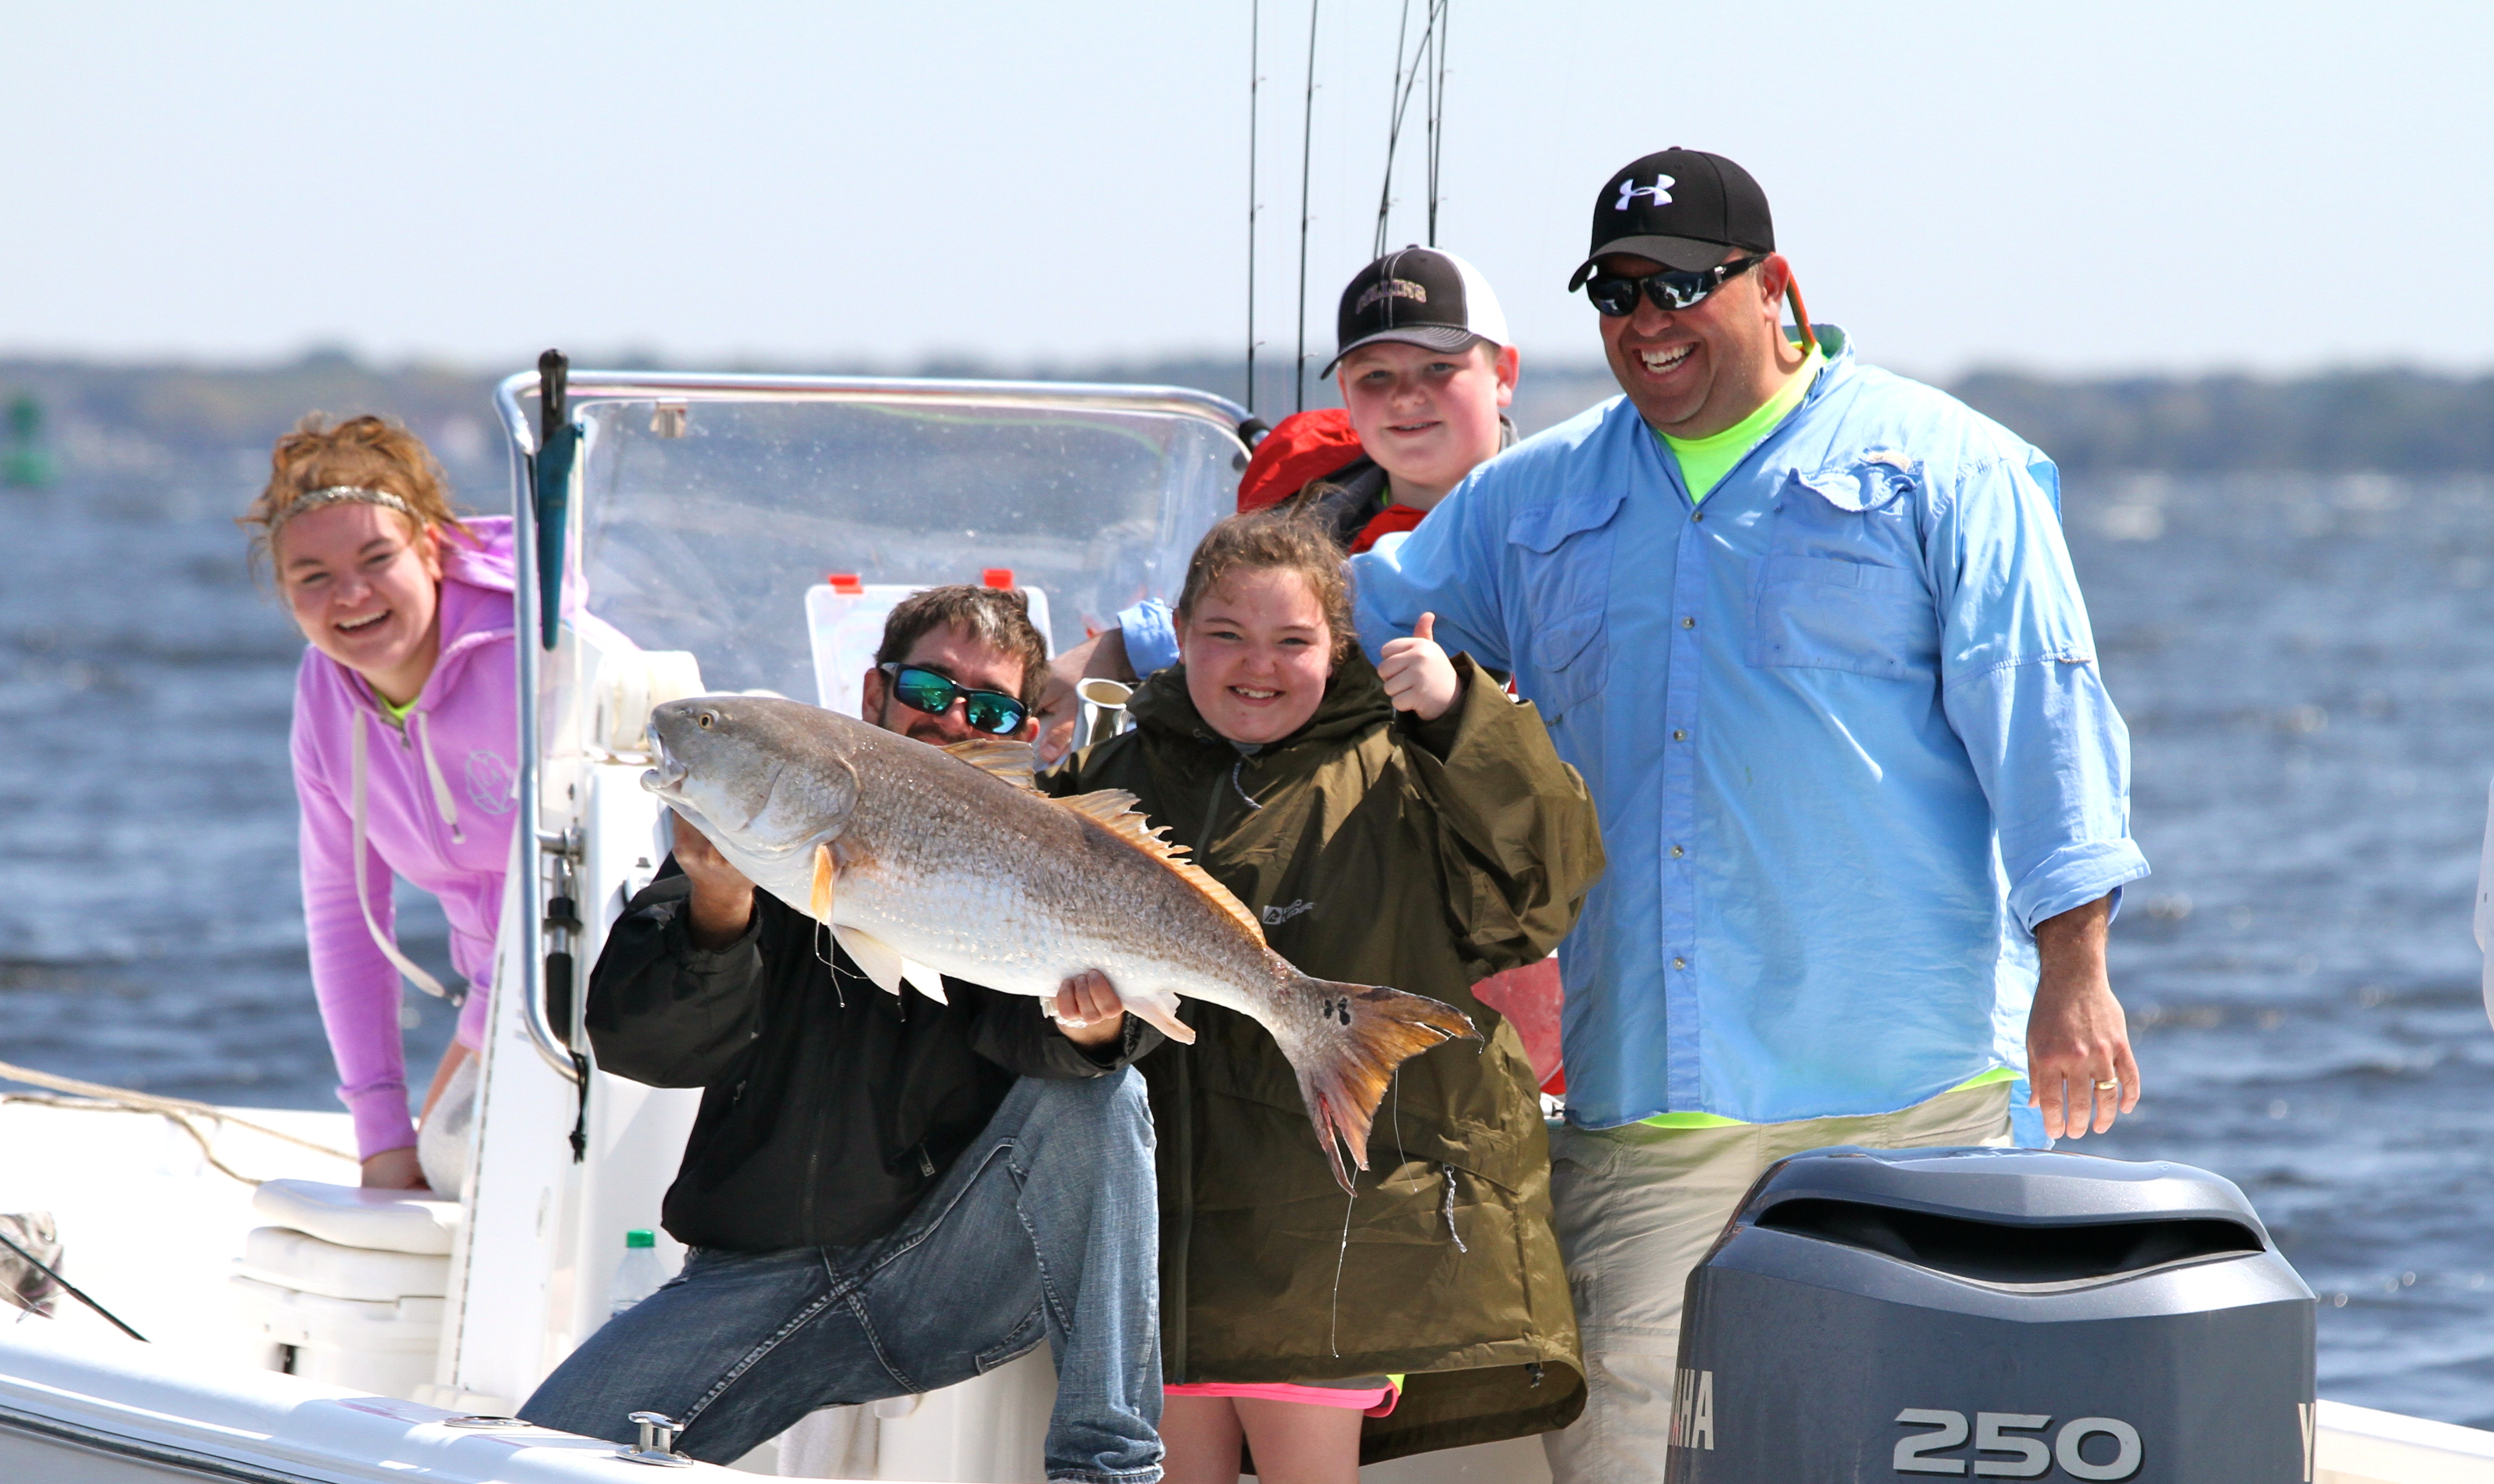 Panama city beach fishing charters swe for Panama city beach charter fishing